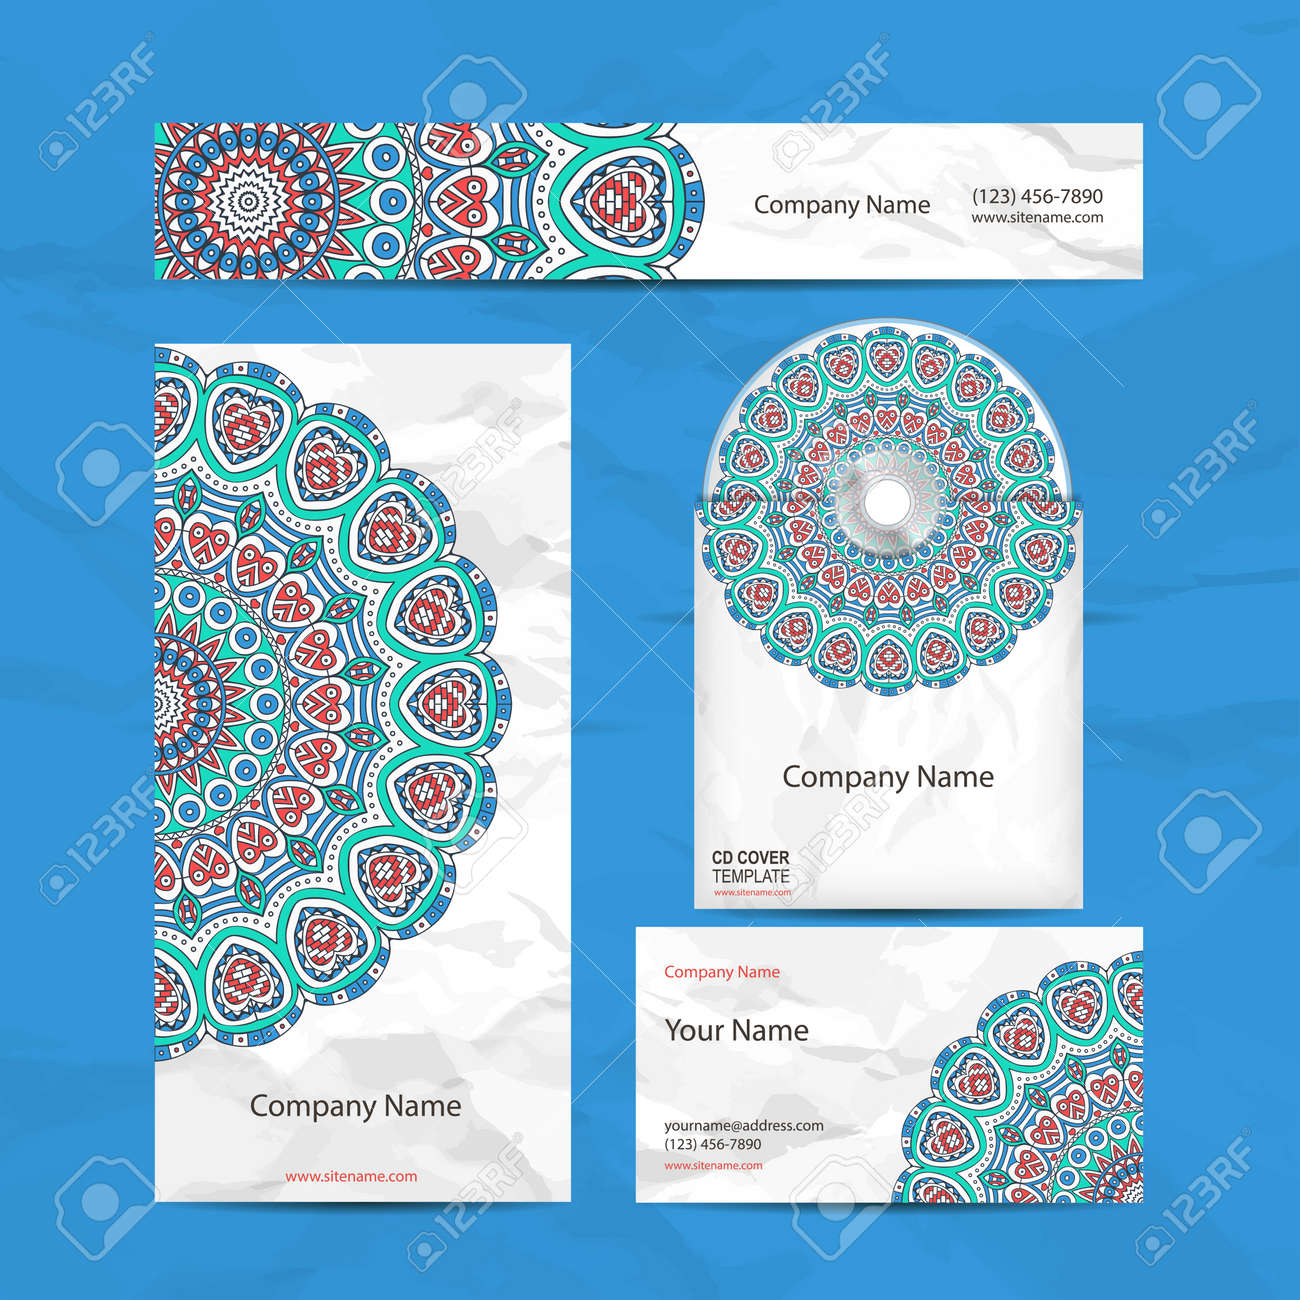 Business Card Collection In Ethnic Style. Hand Draw Royalty Free ...